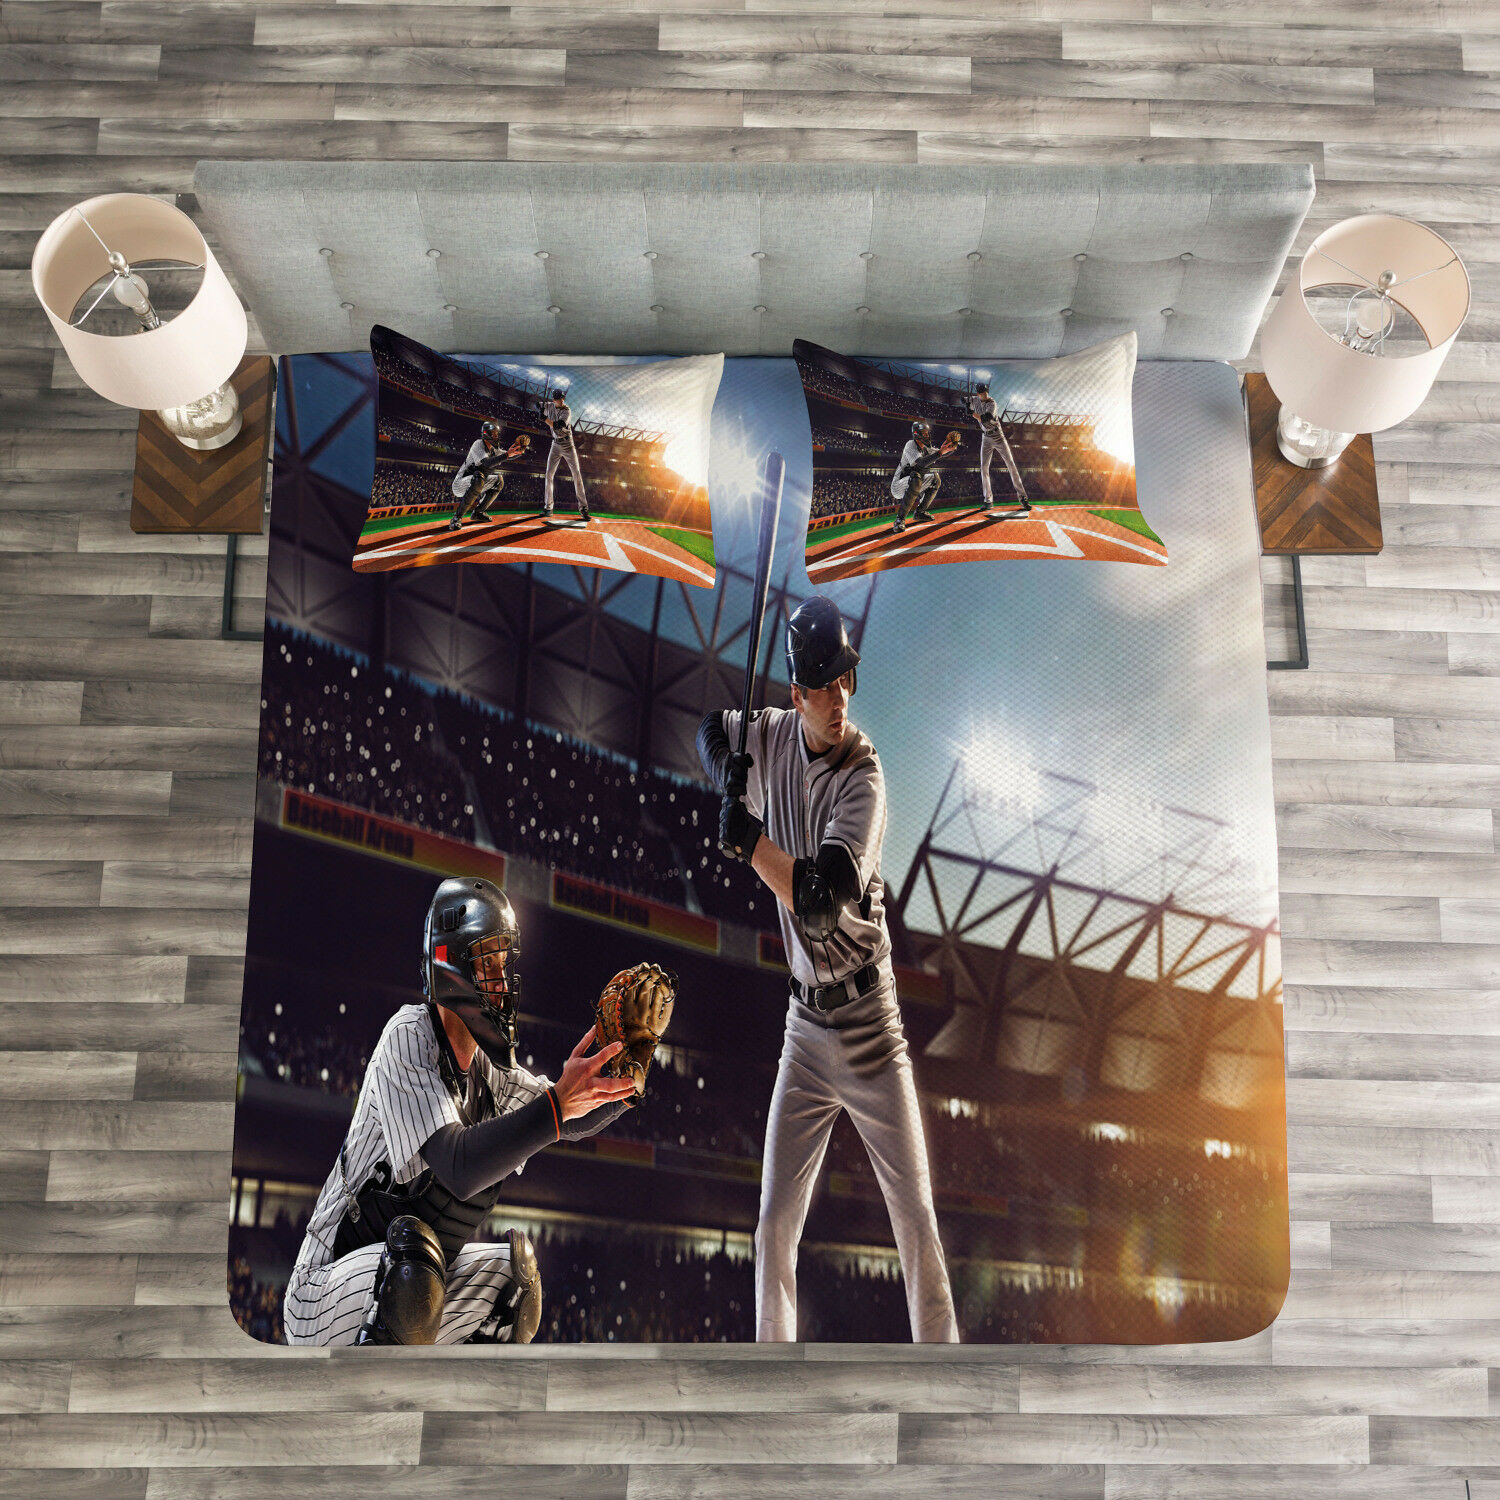 Teen Room Quilted Bedspread & Pillow Shams Set, Baseball Player Game Print